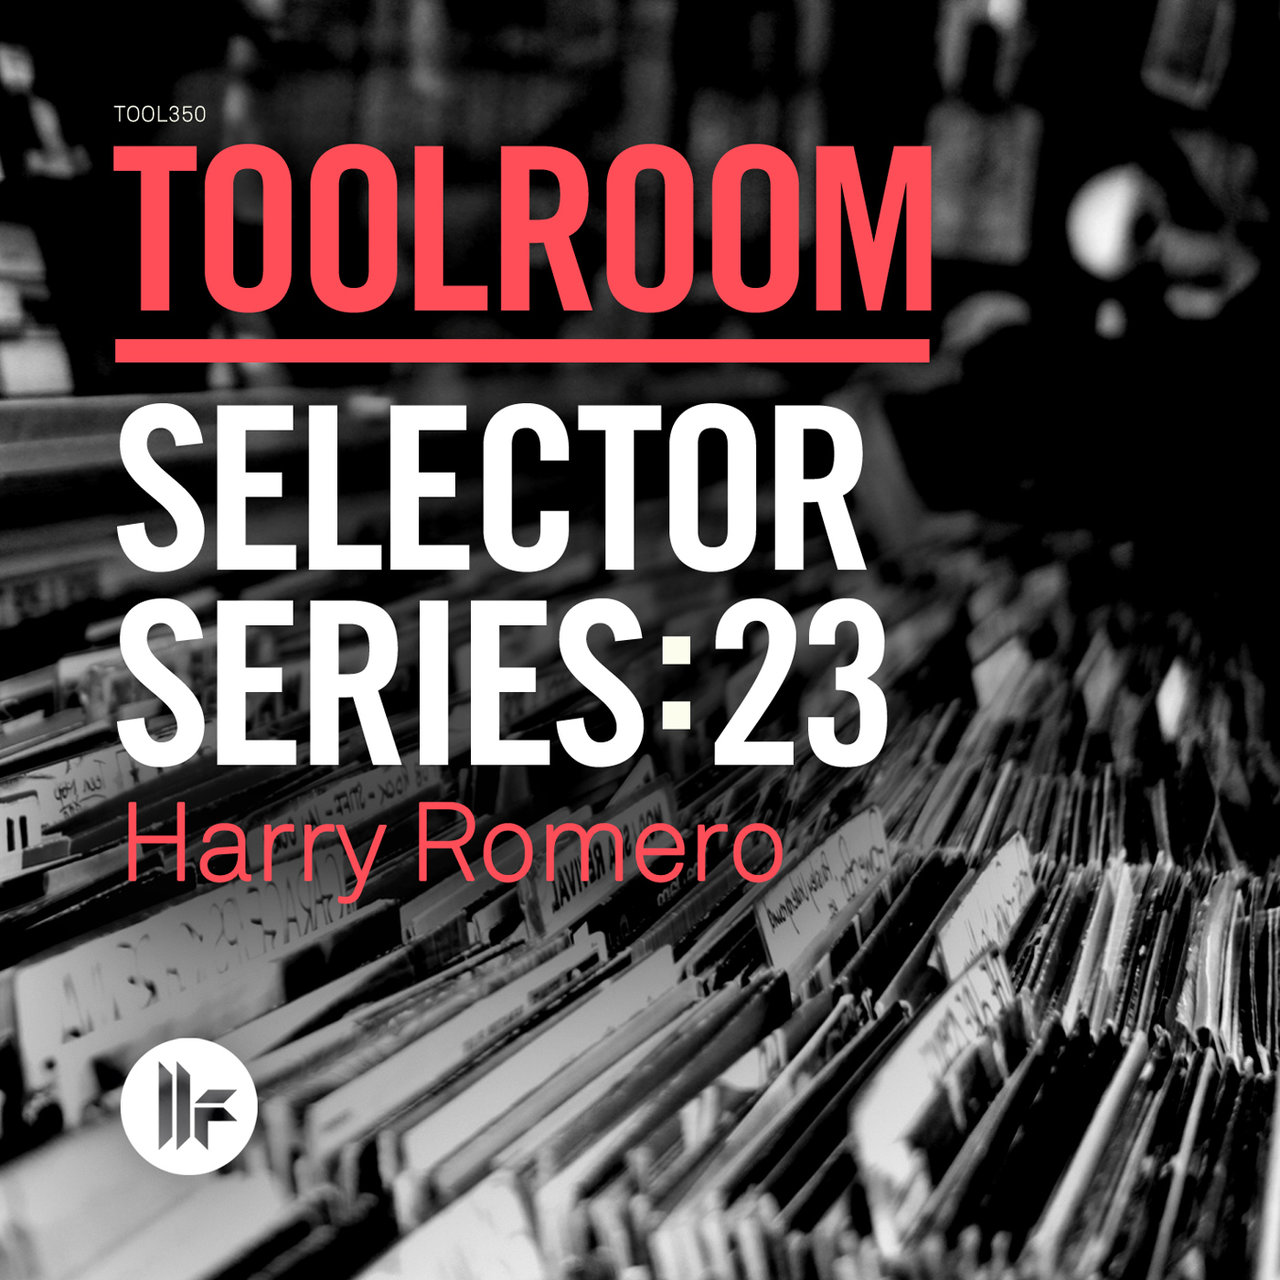 Toolroom Selector Series: 23 Harry Romero